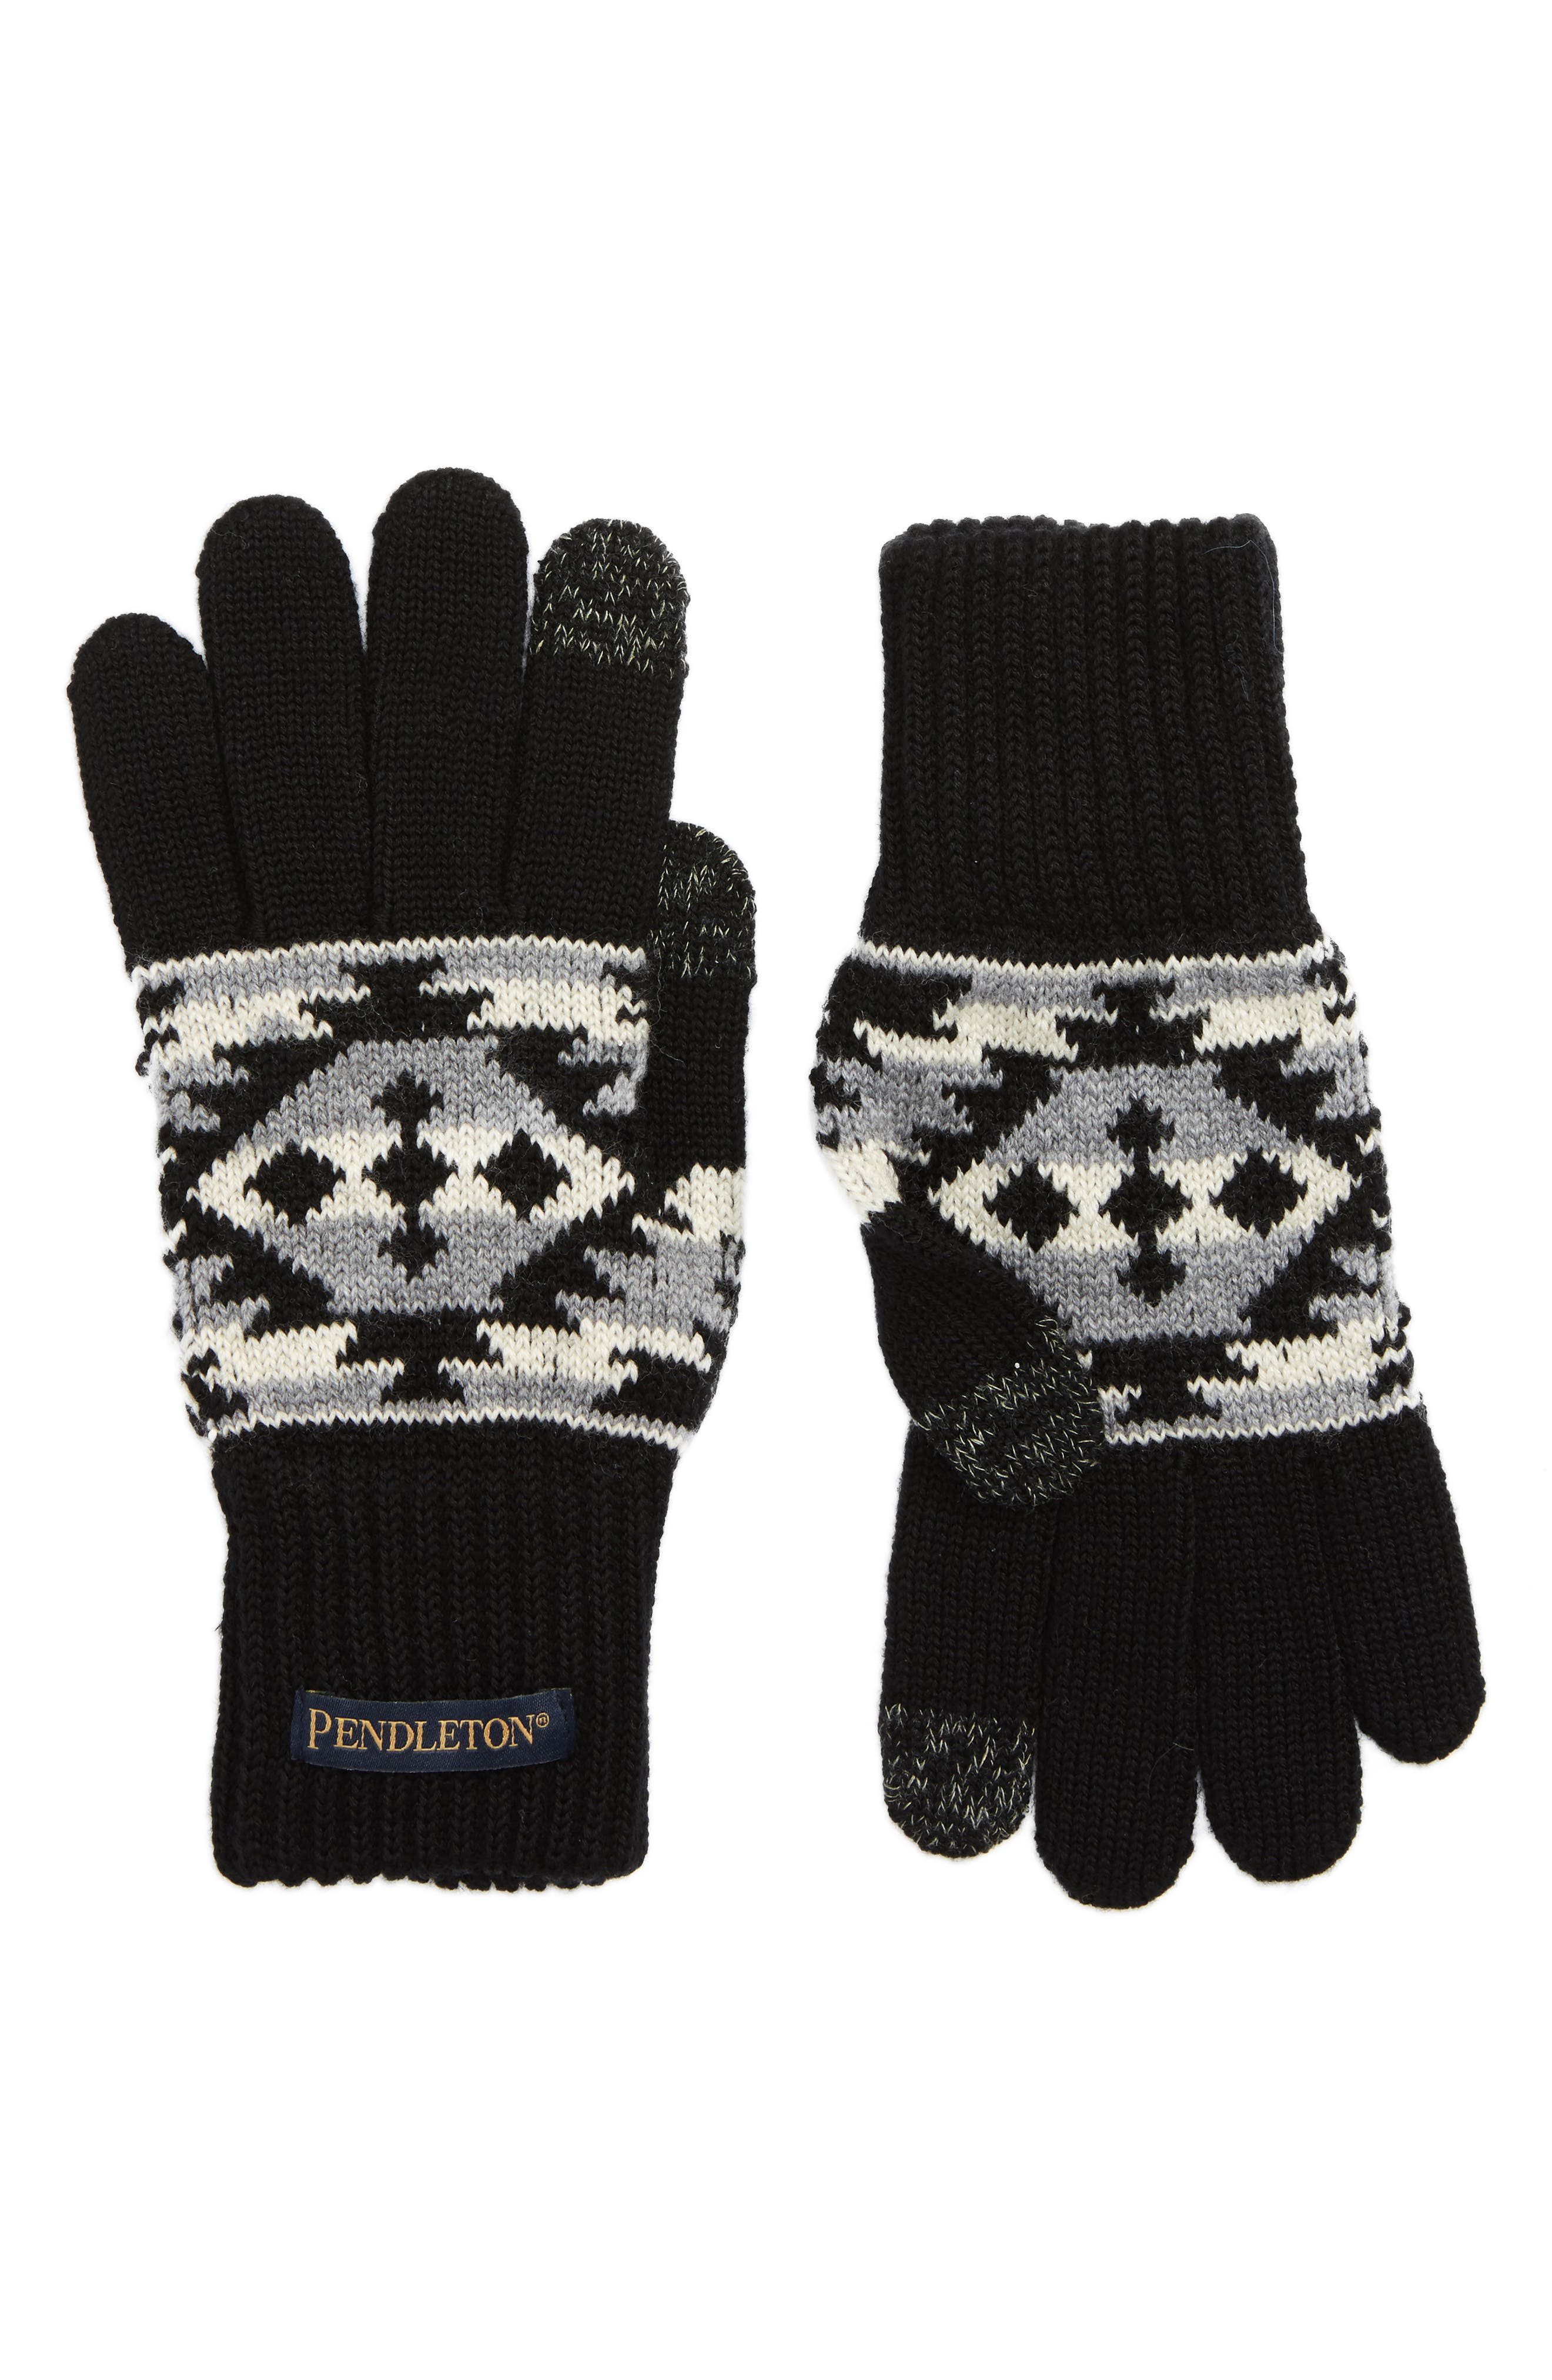 Main Image - Pendleton Texting Gloves